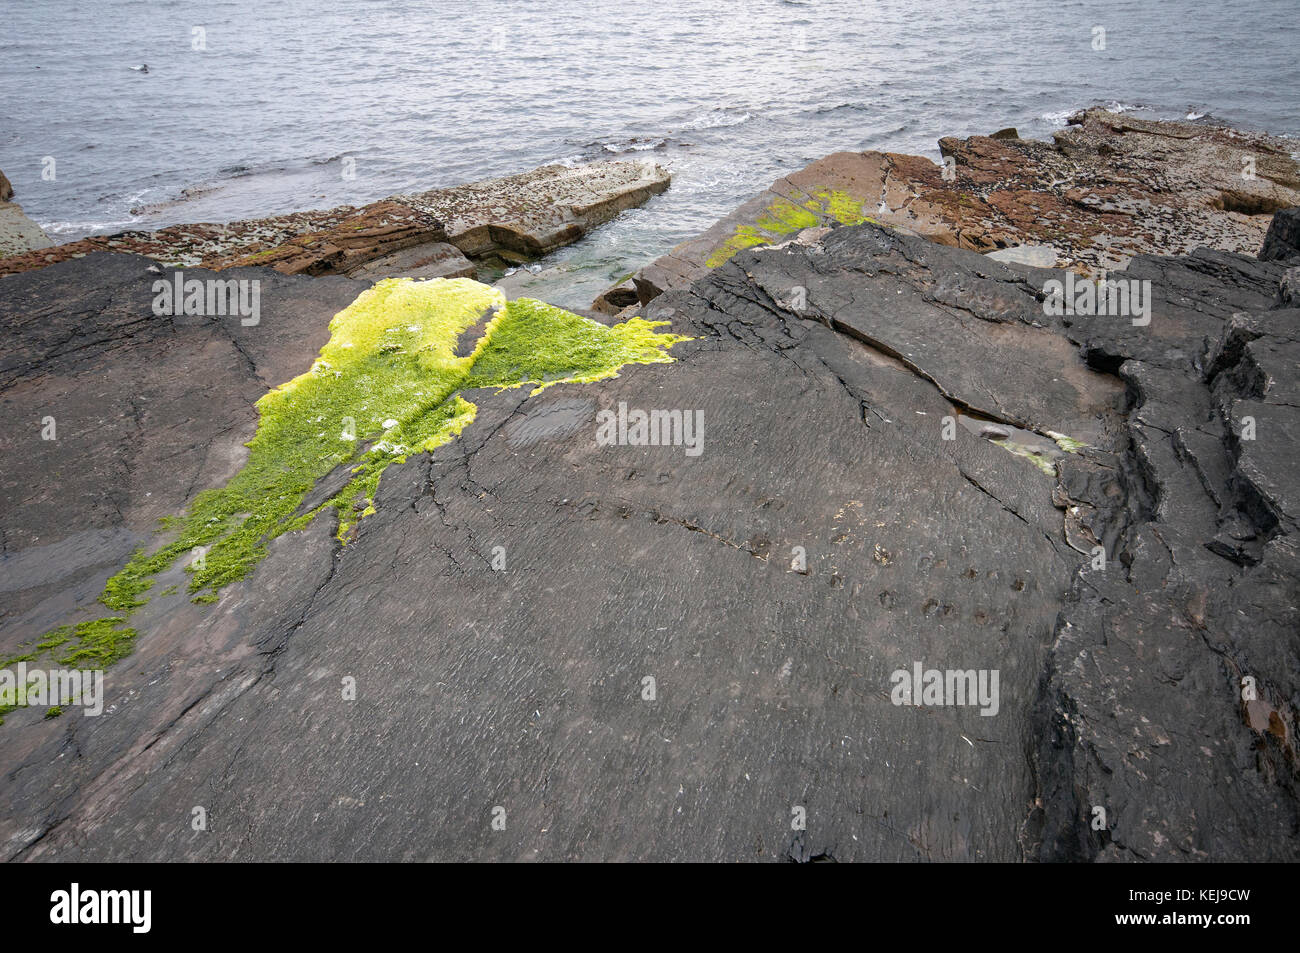 Tetrapod trackway in Valentia Island, County Kerry, Ireland - Stock Image